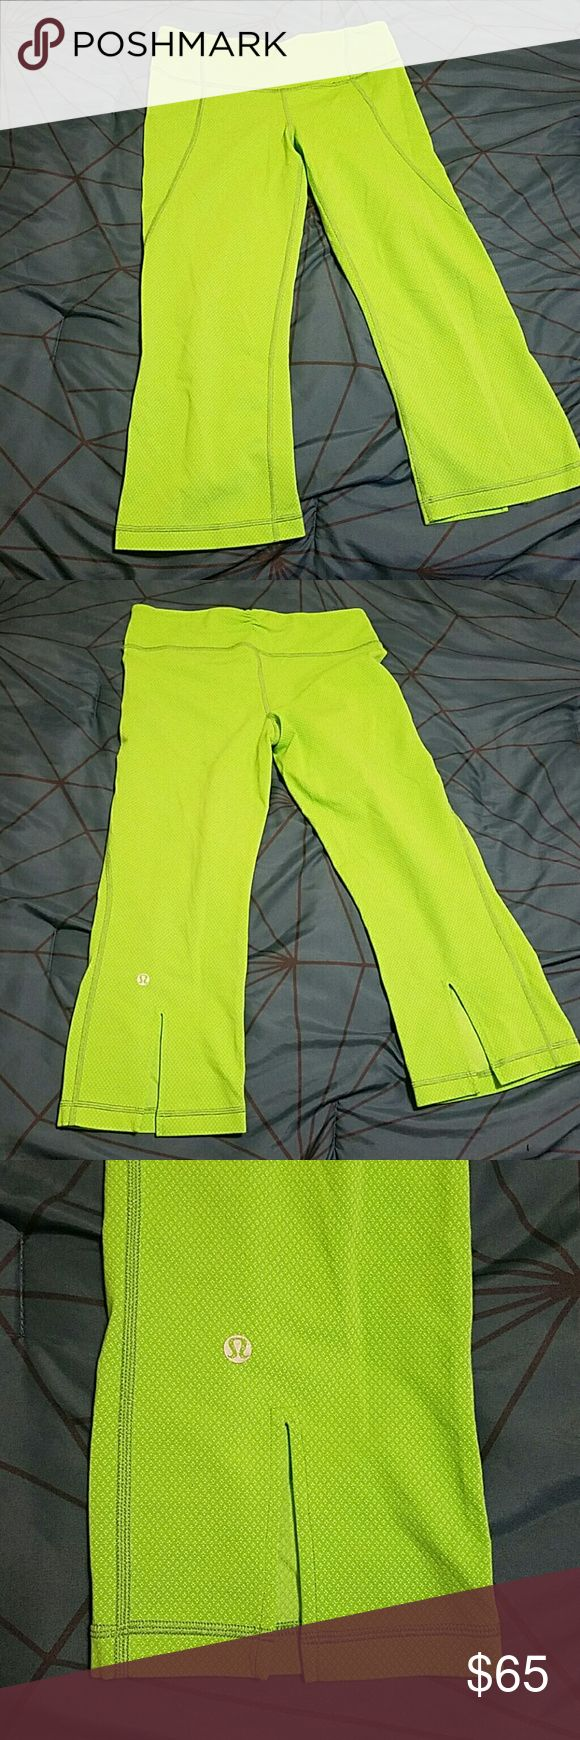 Lululemon capris Lululemon capris. Lime green with small white dot pattern. Slits in back for calves.  Size 6. Only wore once. Last picture for color. lululemon athletica Pants Capris